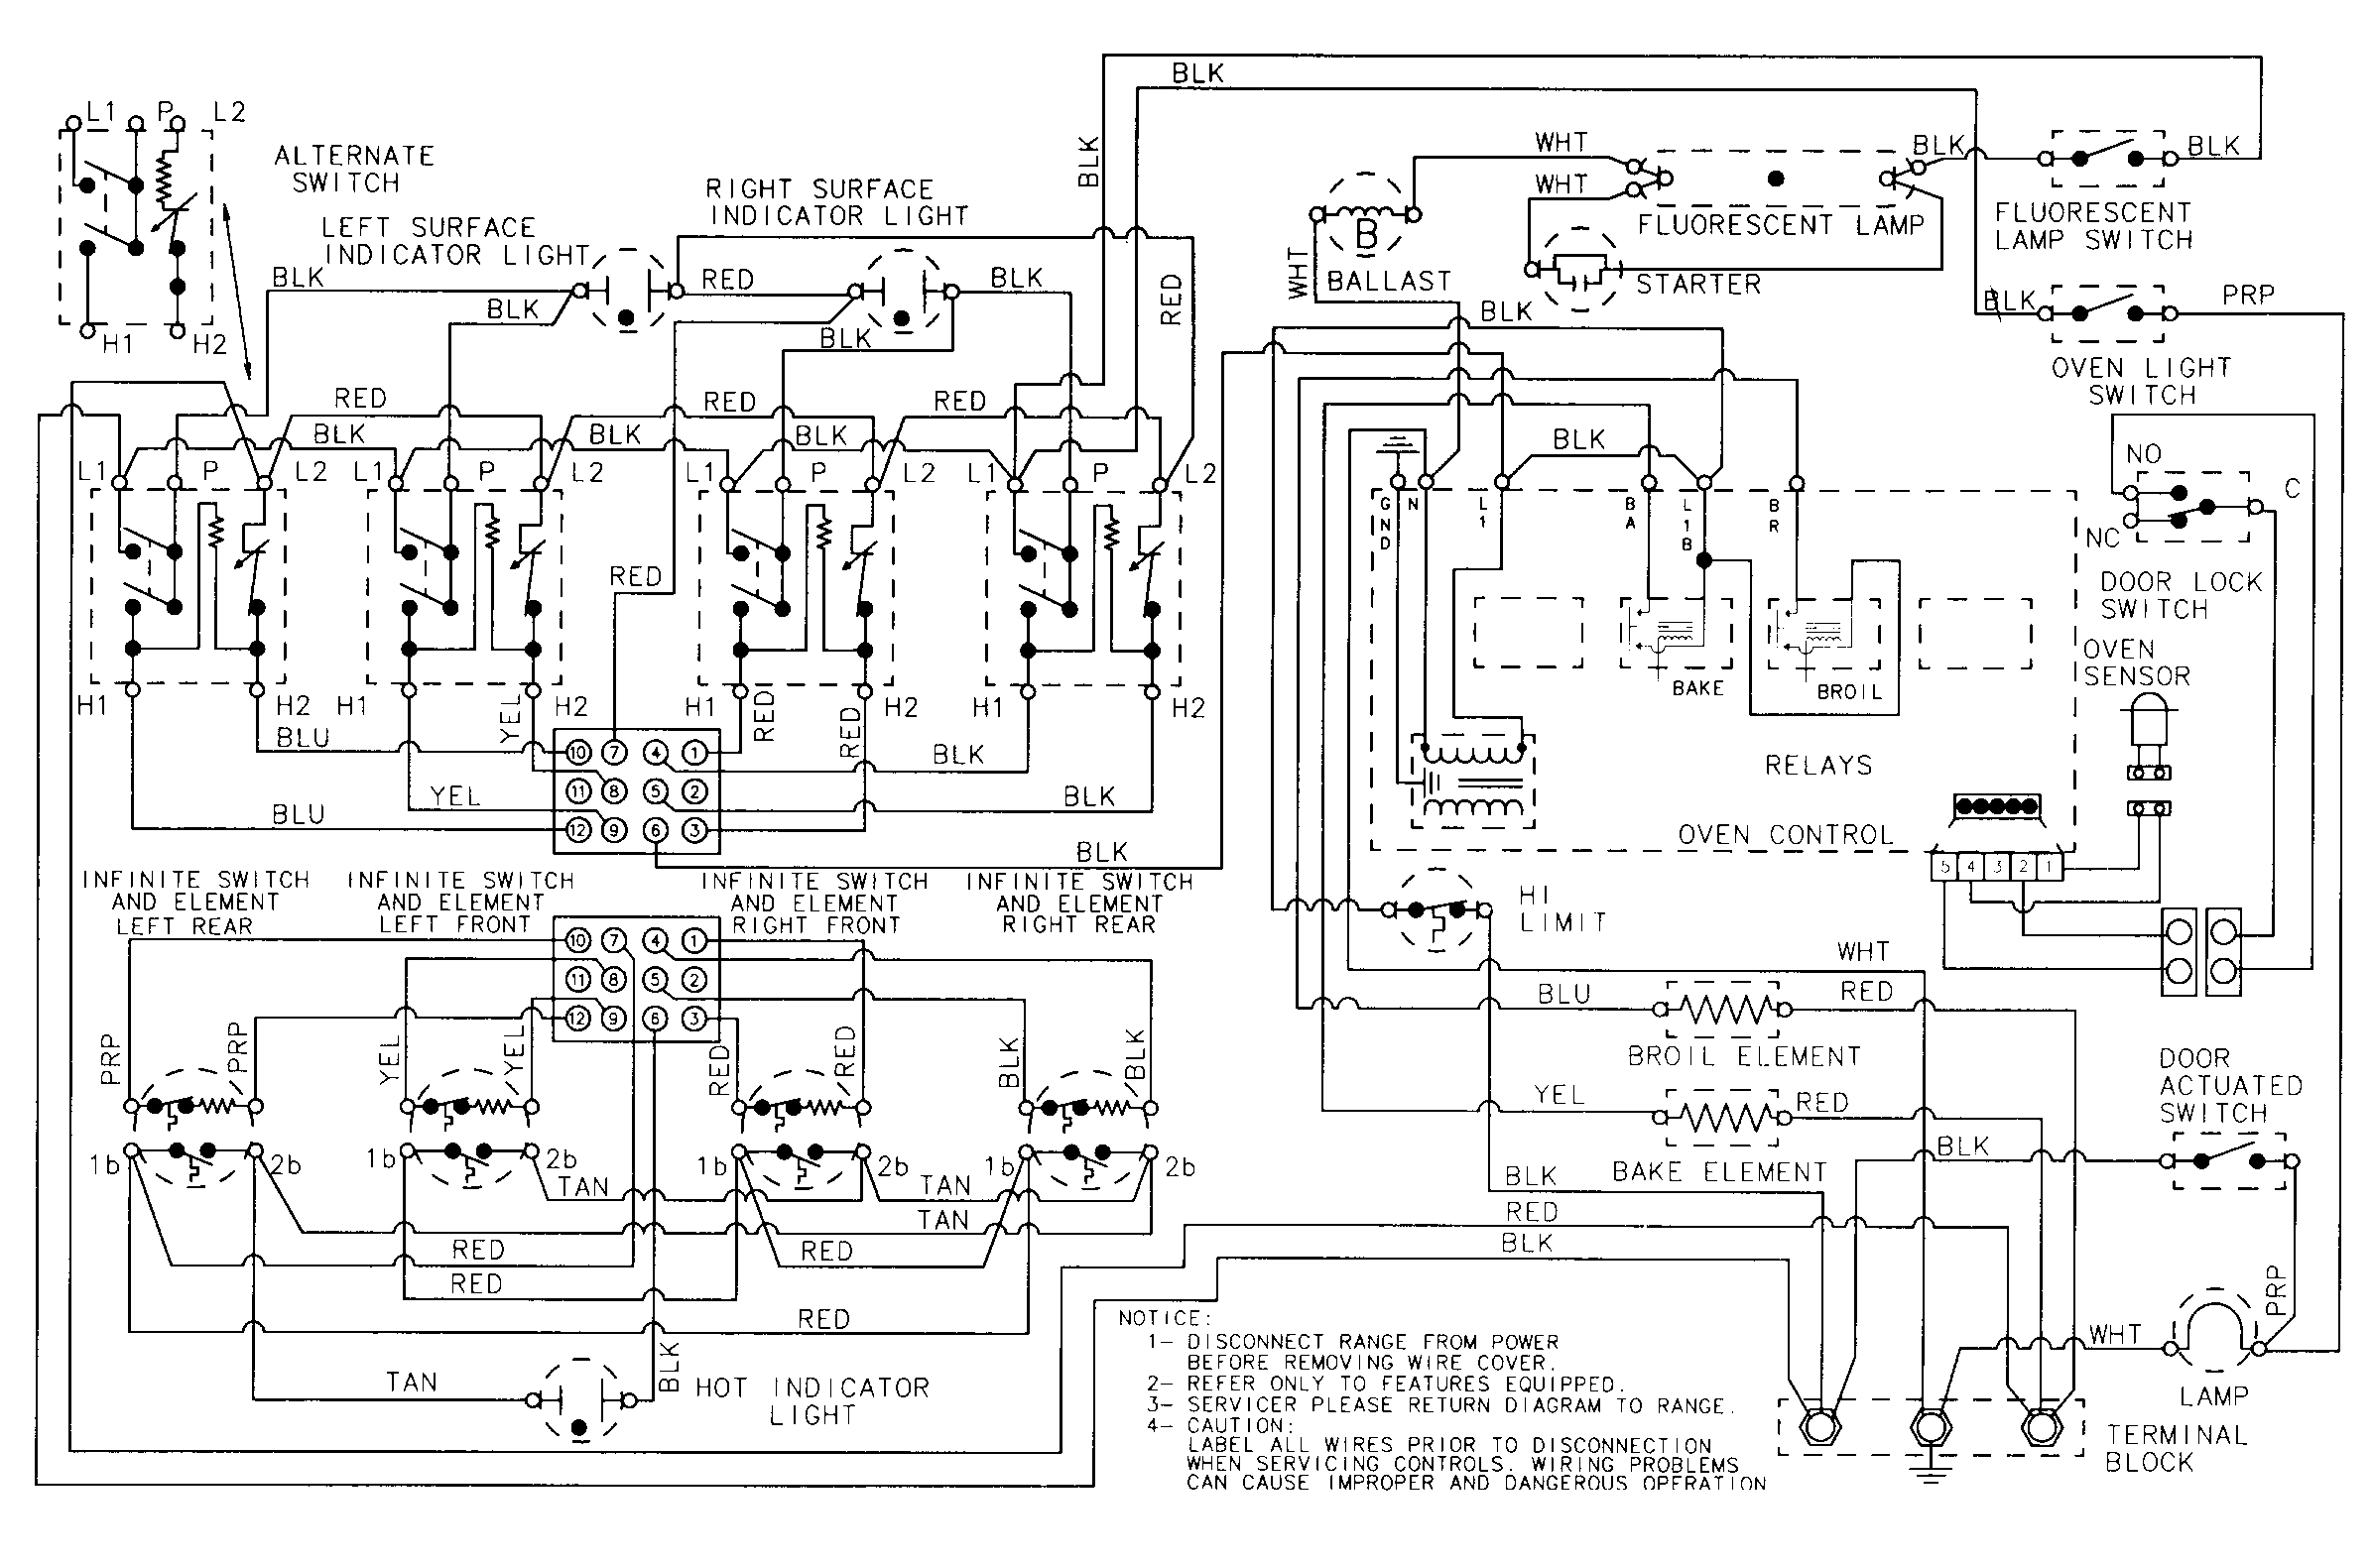 maytag cre9600 timer stove clocks and appliance timers equipment wiring diagrams cre9600 range wiring information parts diagram